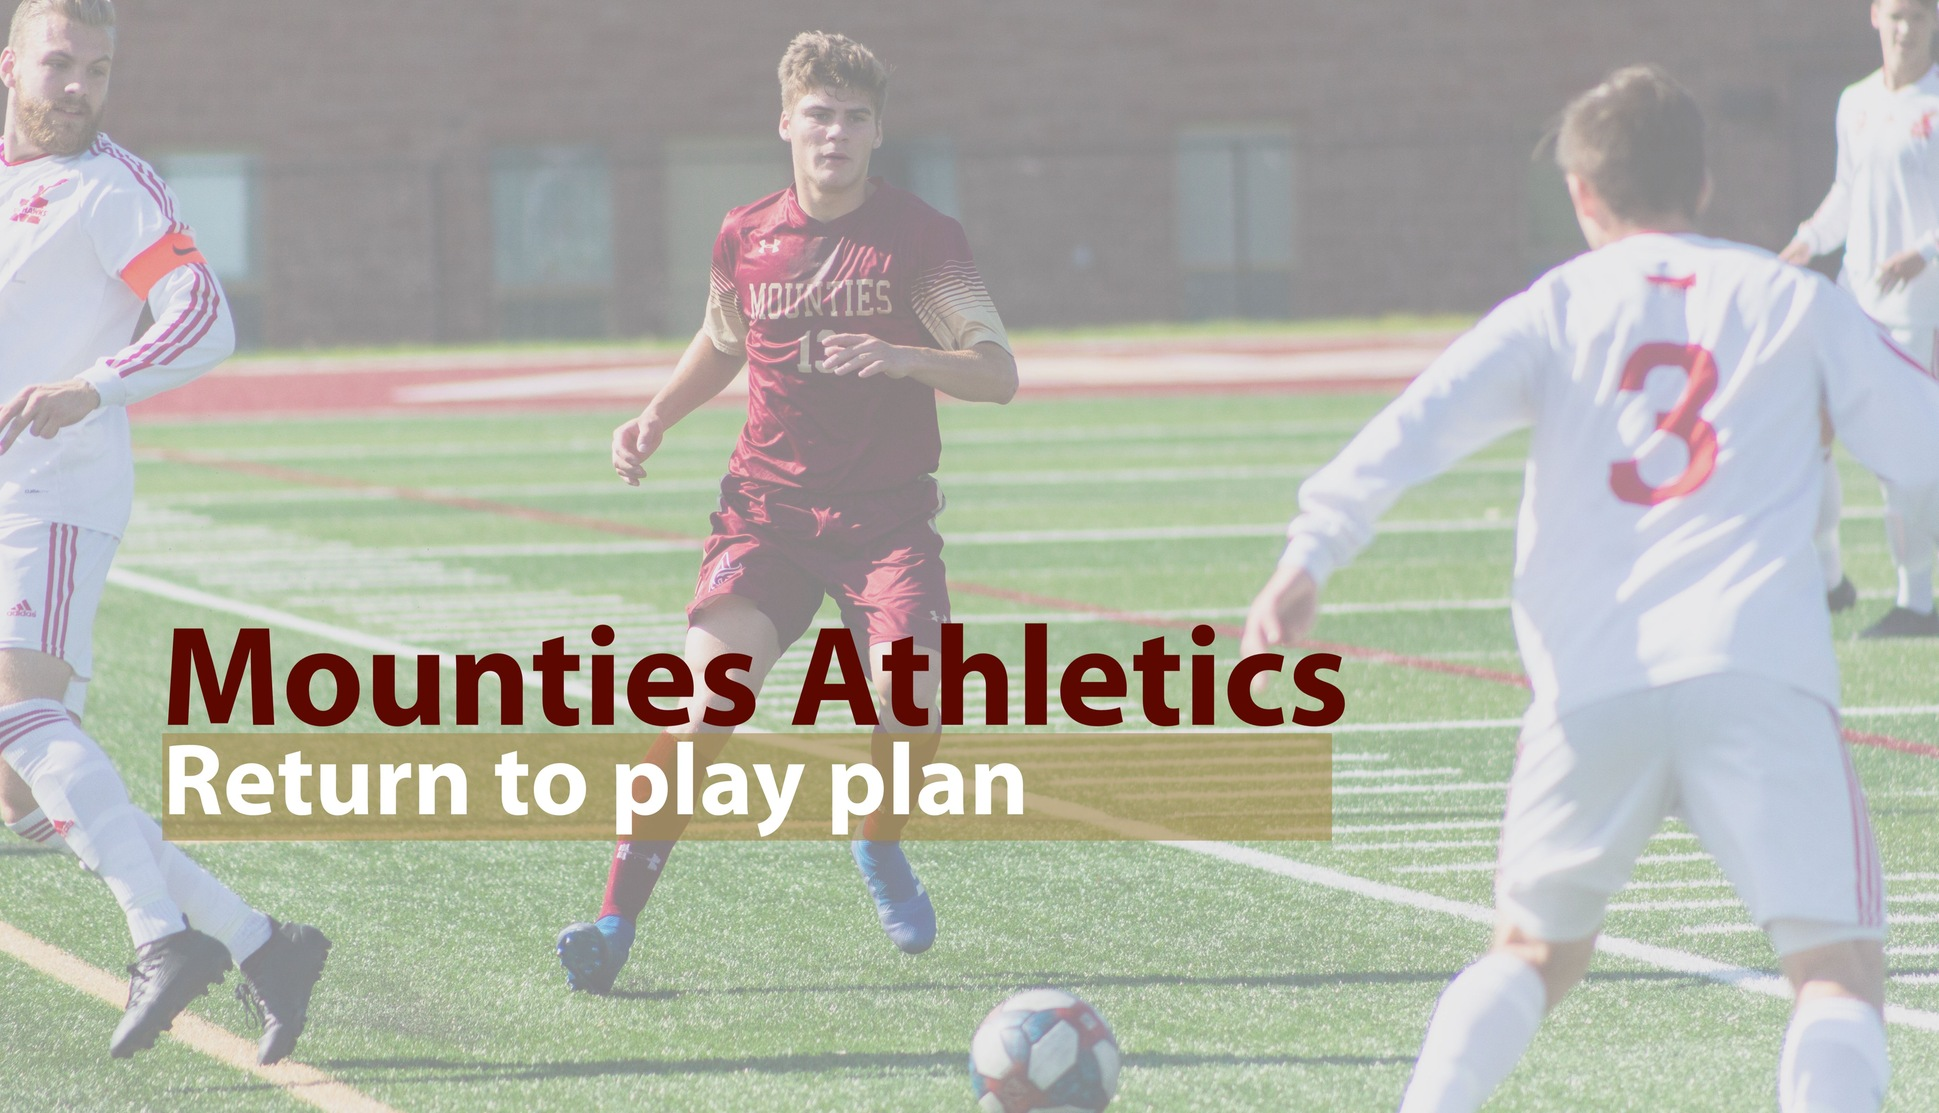 Mounties Athletics and Recreation: Operating Plan